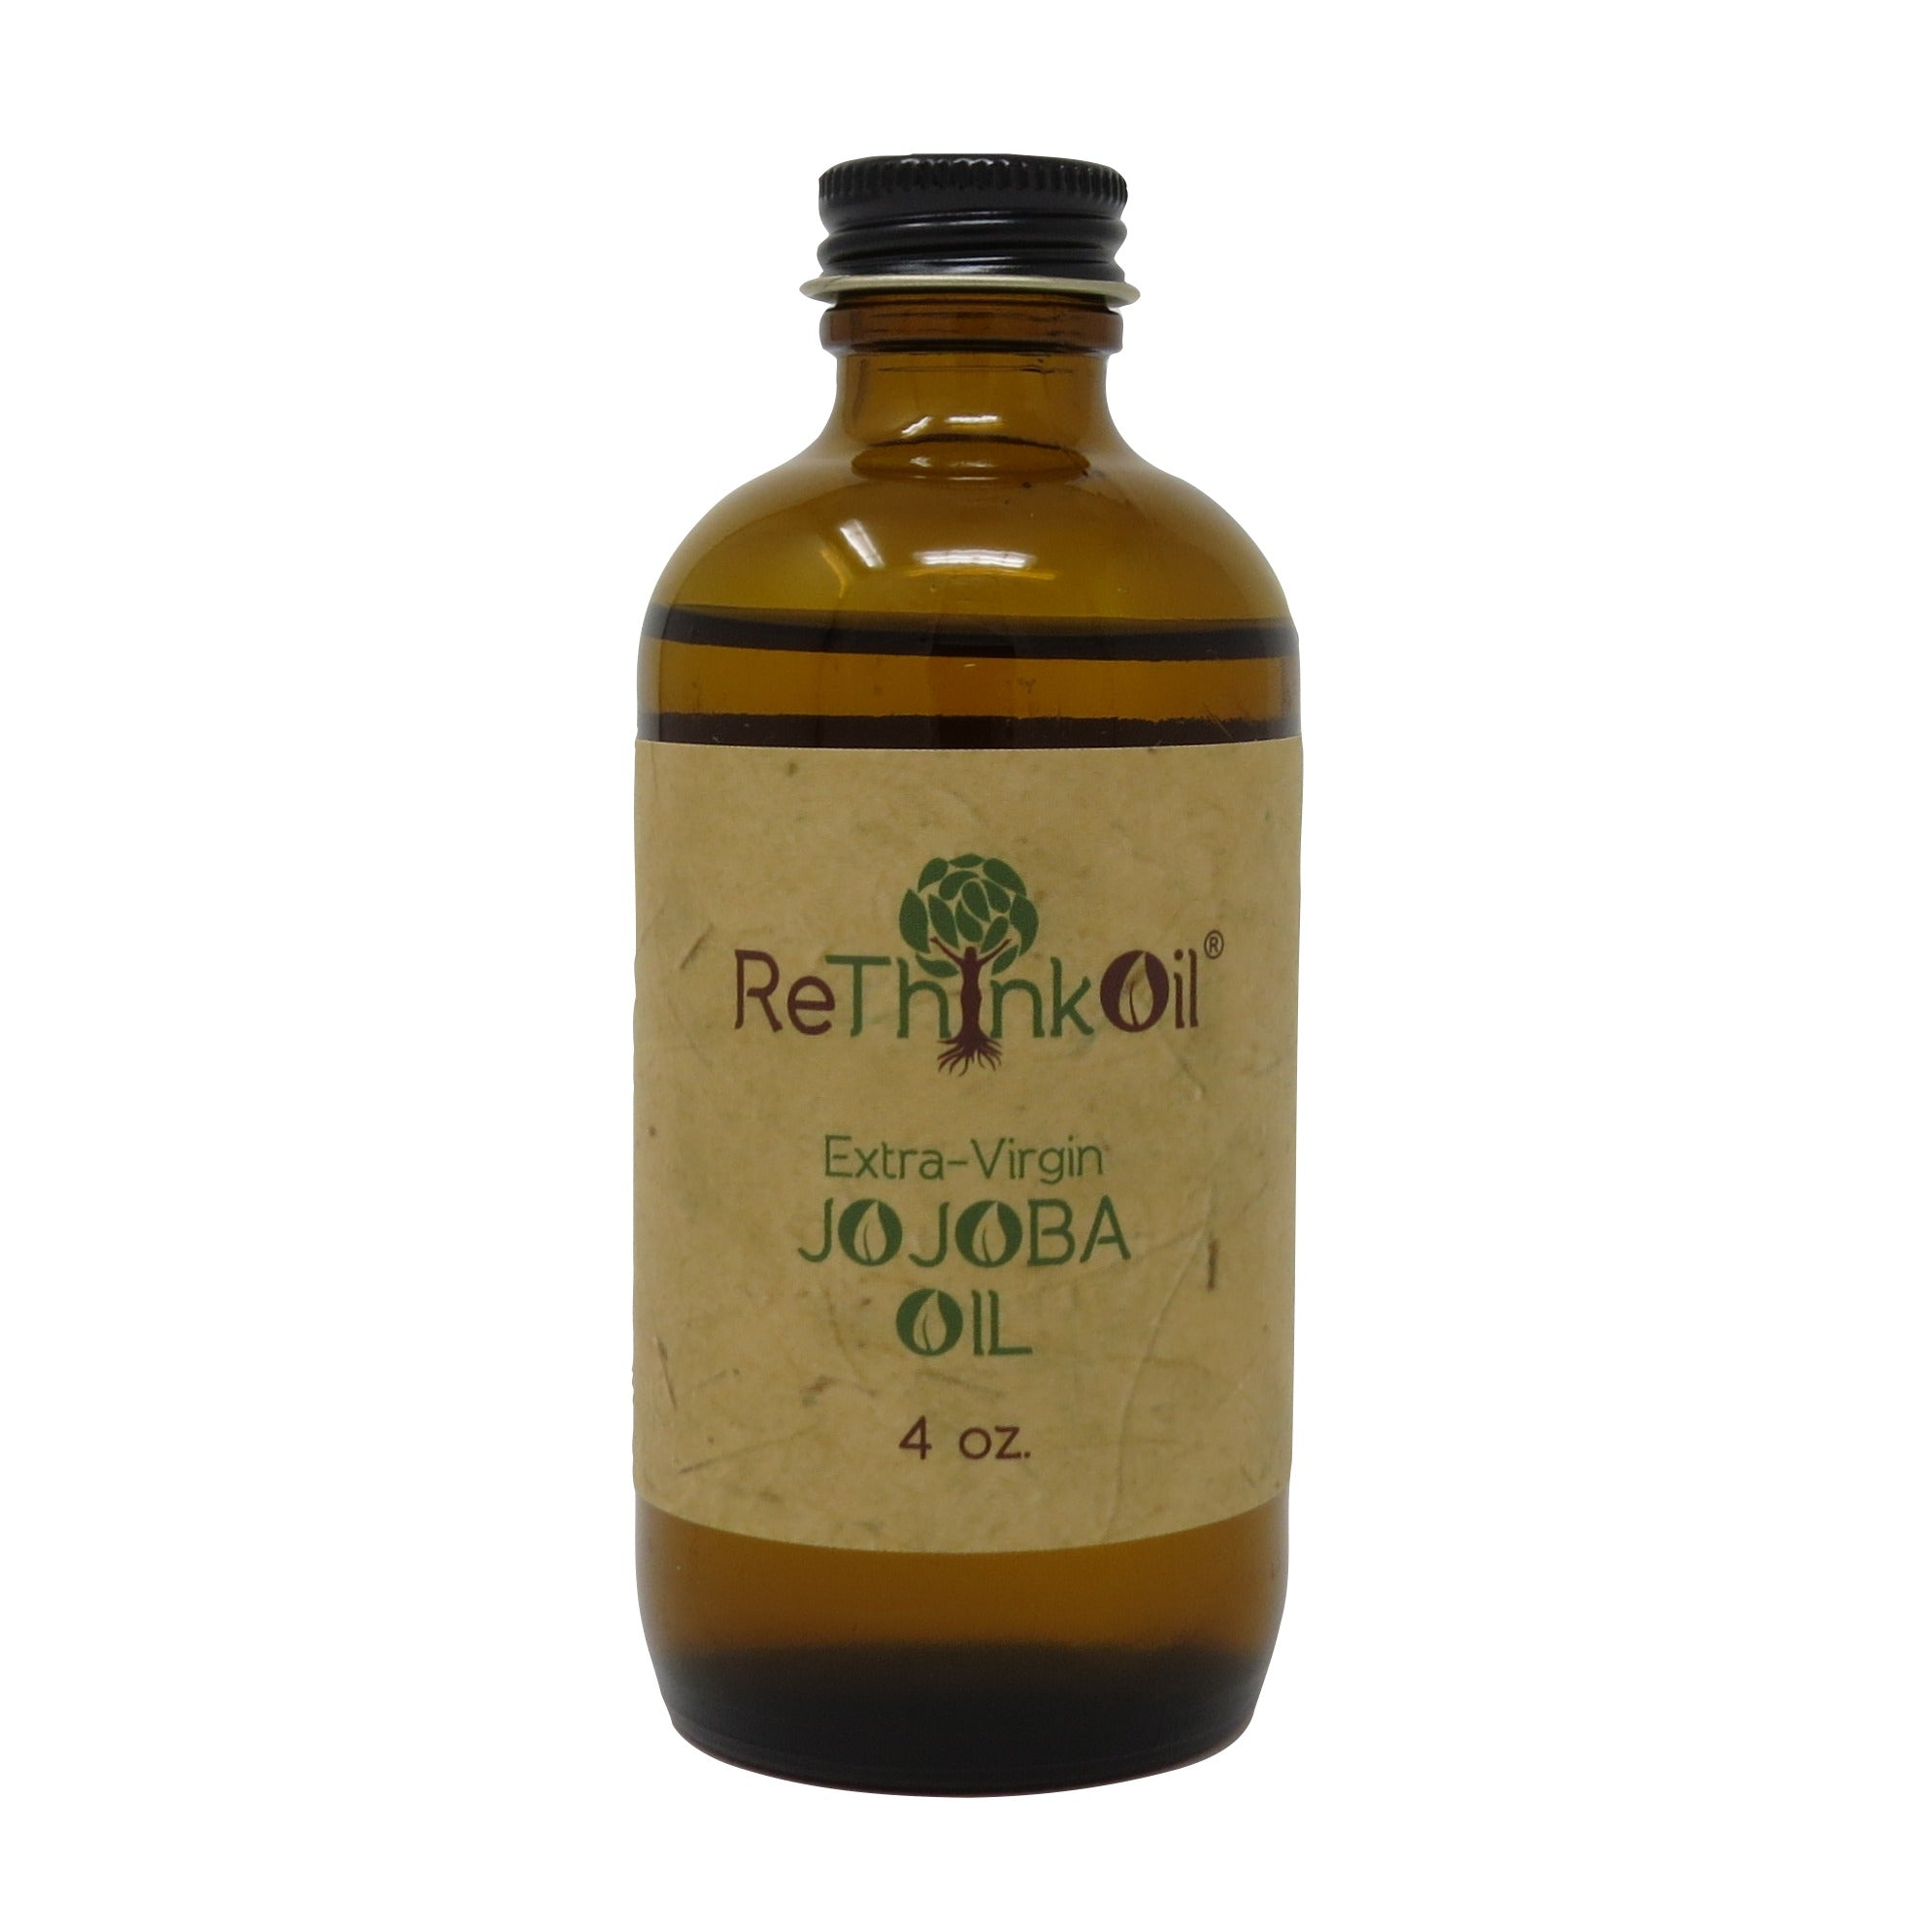 ReThinkOil Jojoba Oil Bottle